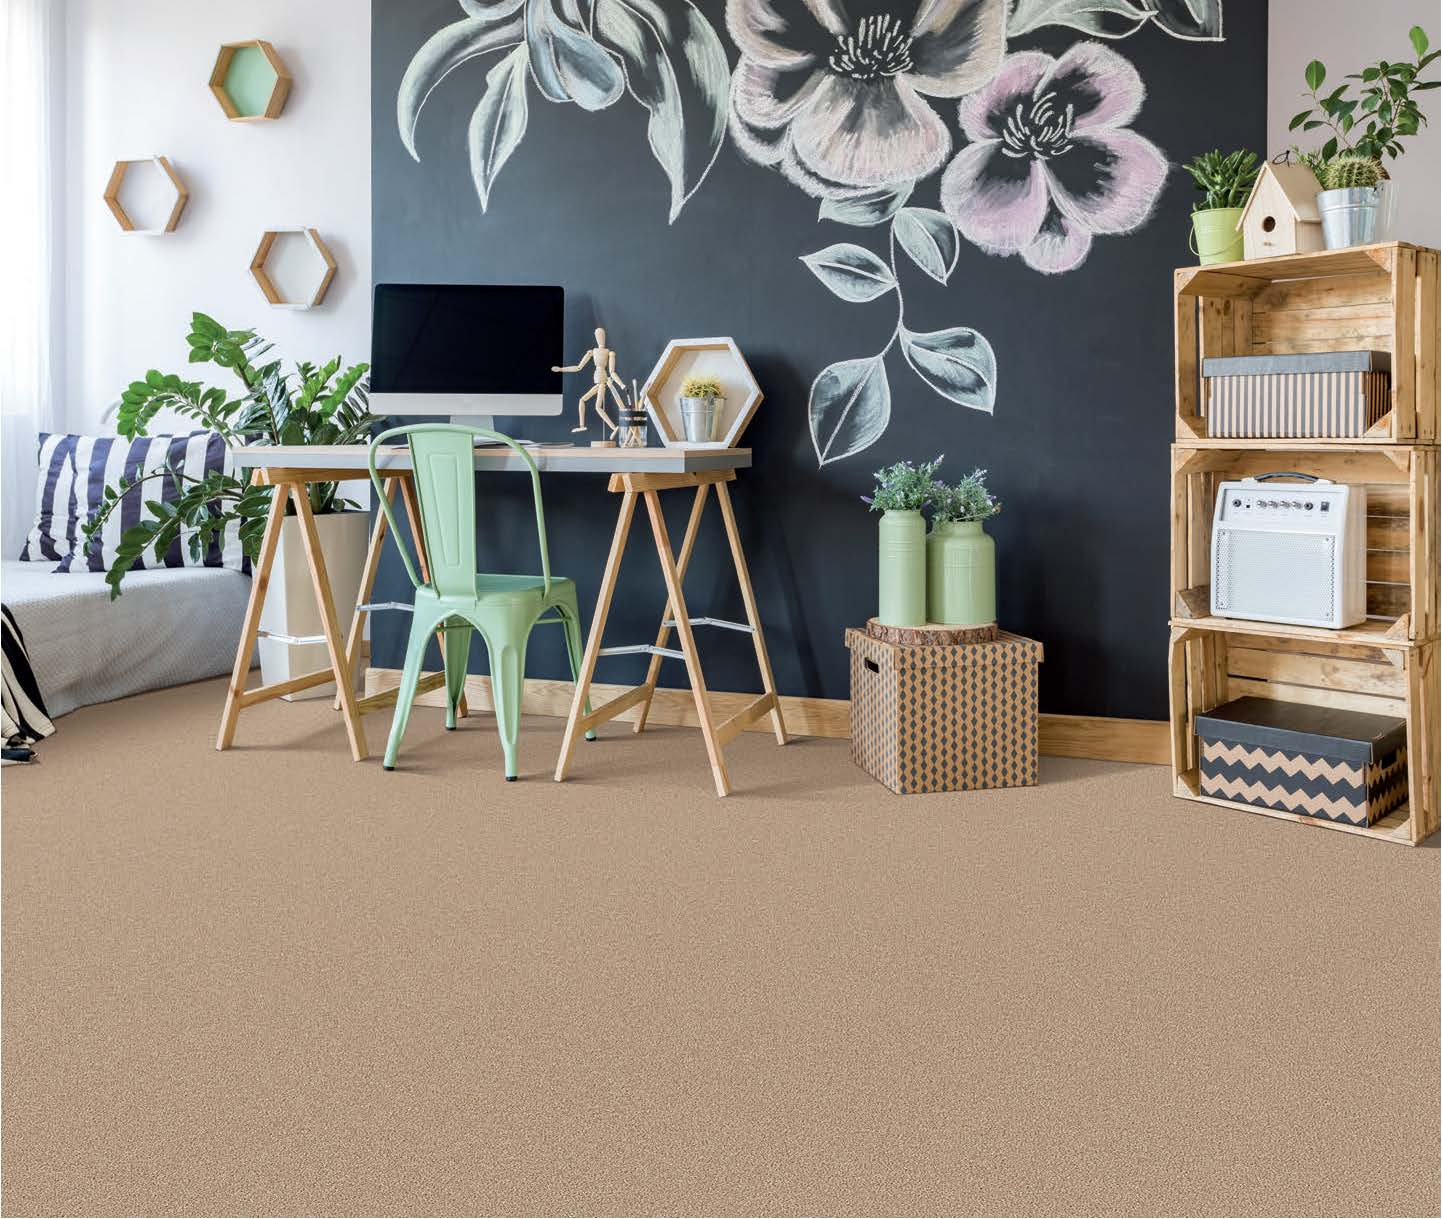 Carpet or any other flooring installation from Wilkerson Floors are all guaranteed!